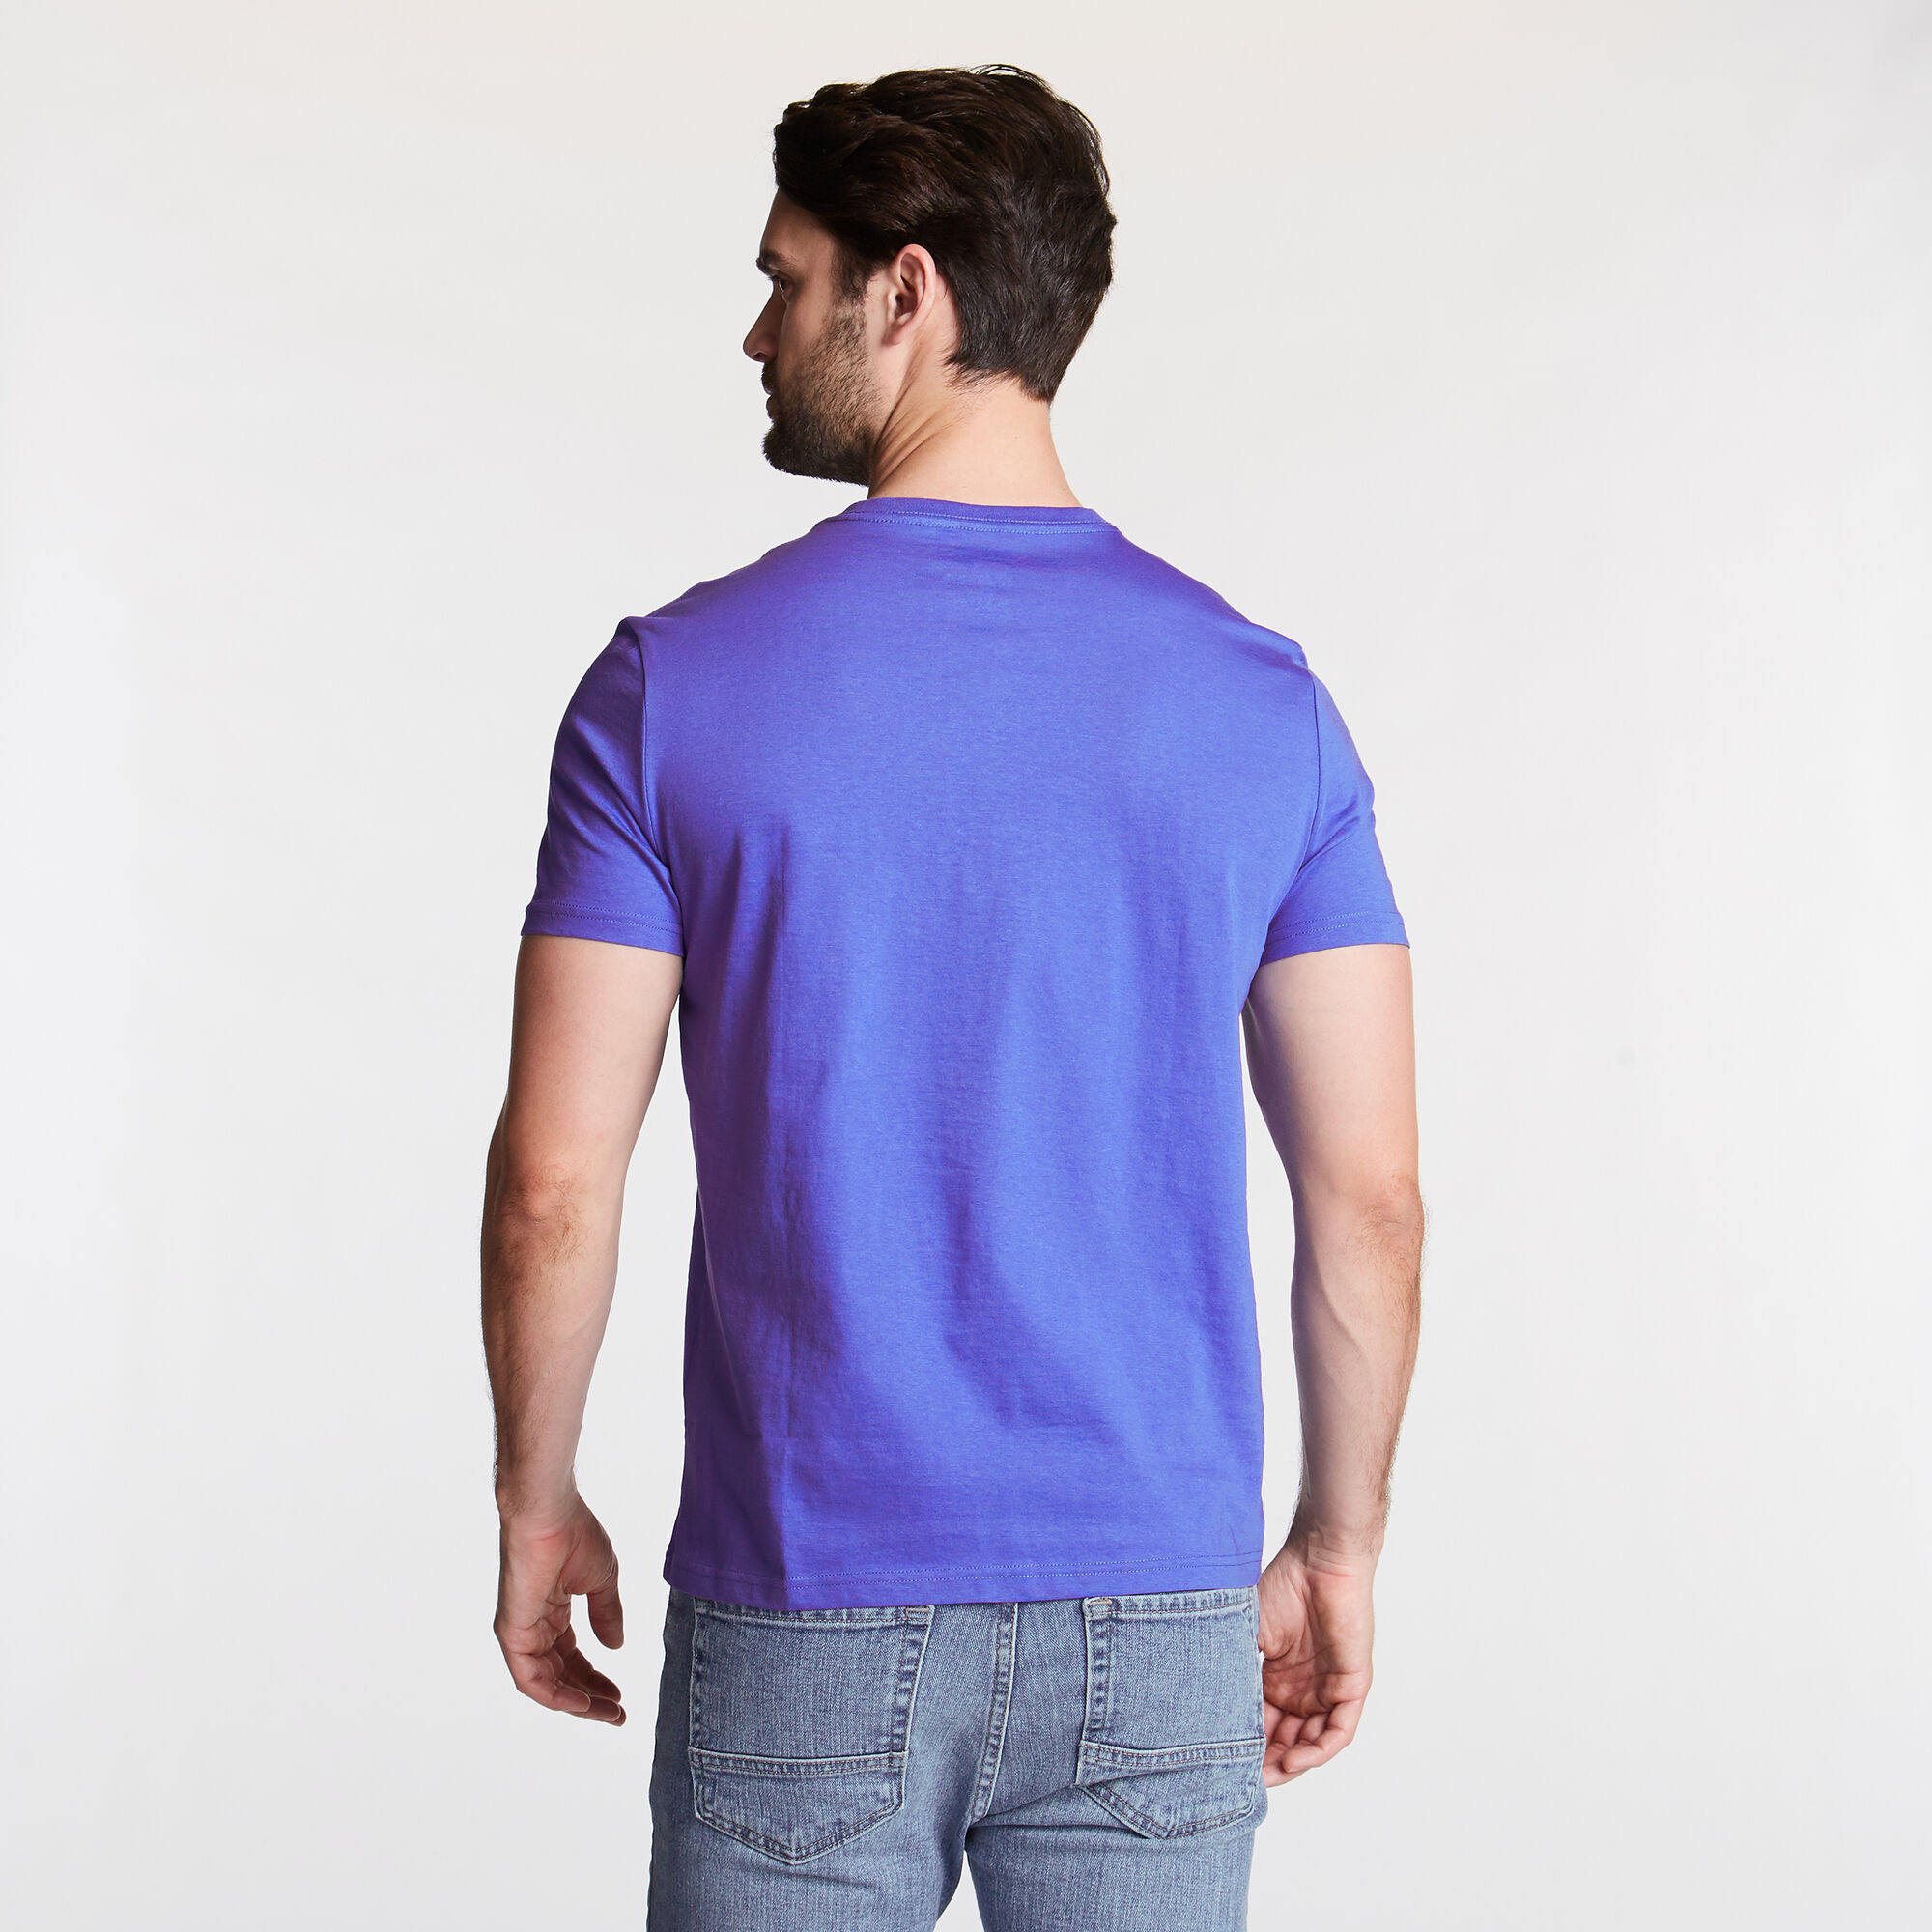 Nautica-Mens-V-Neck-Short-Sleeve-T-Shirt thumbnail 8